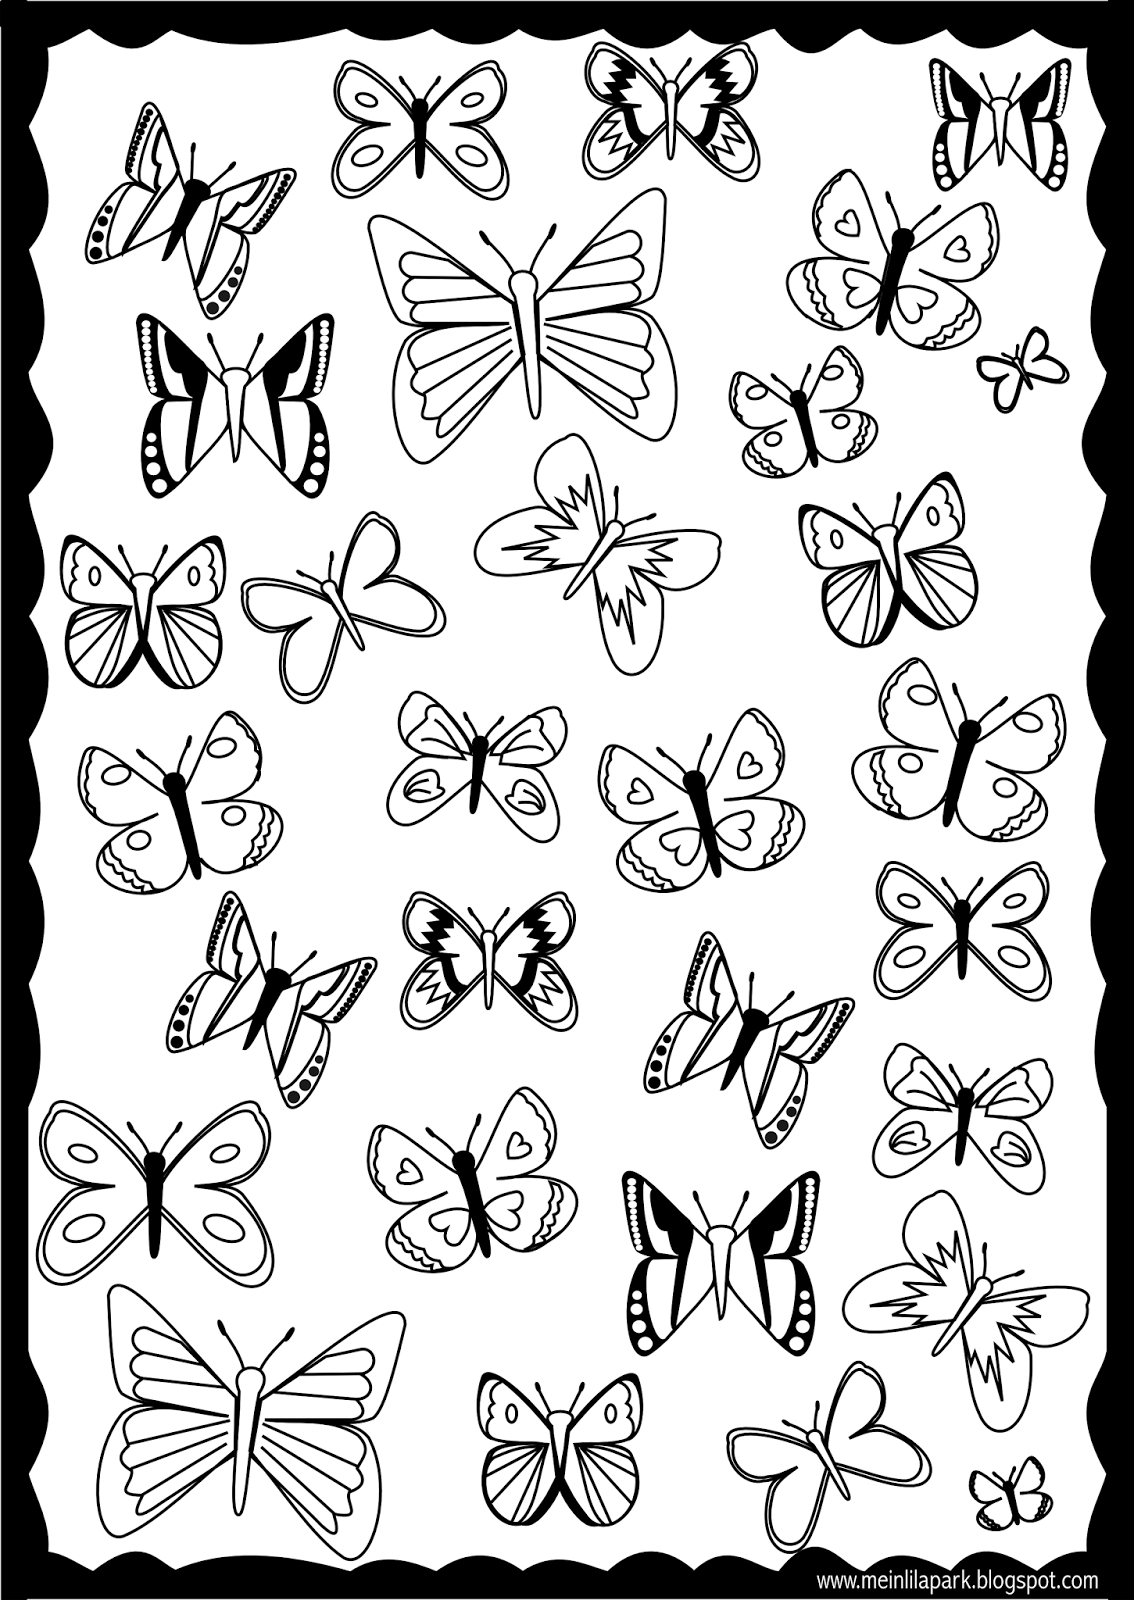 coloring worksheets butterfly free printable butterfly coloring page ausdruckbare worksheets butterfly coloring